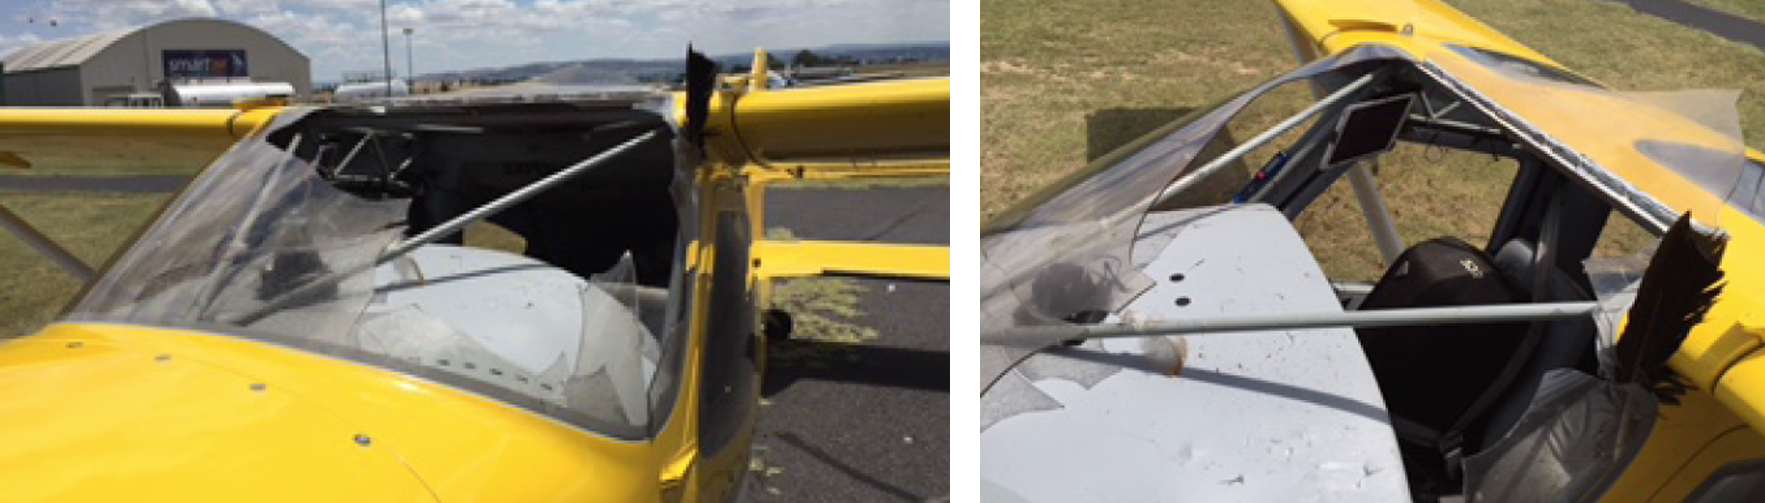 Figure 1: Damage to the aircraft windscreen